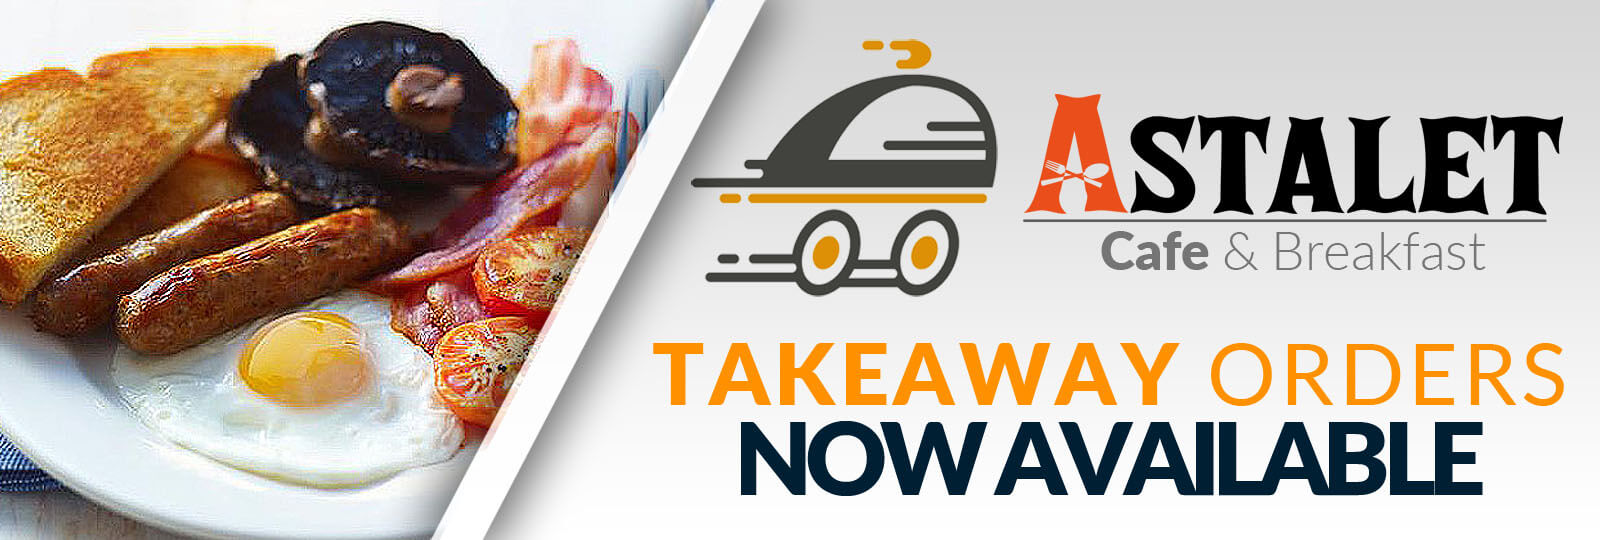 astalet-woking-aldershot-home-delivery-takeaway-breakfast-dinner-food-meal